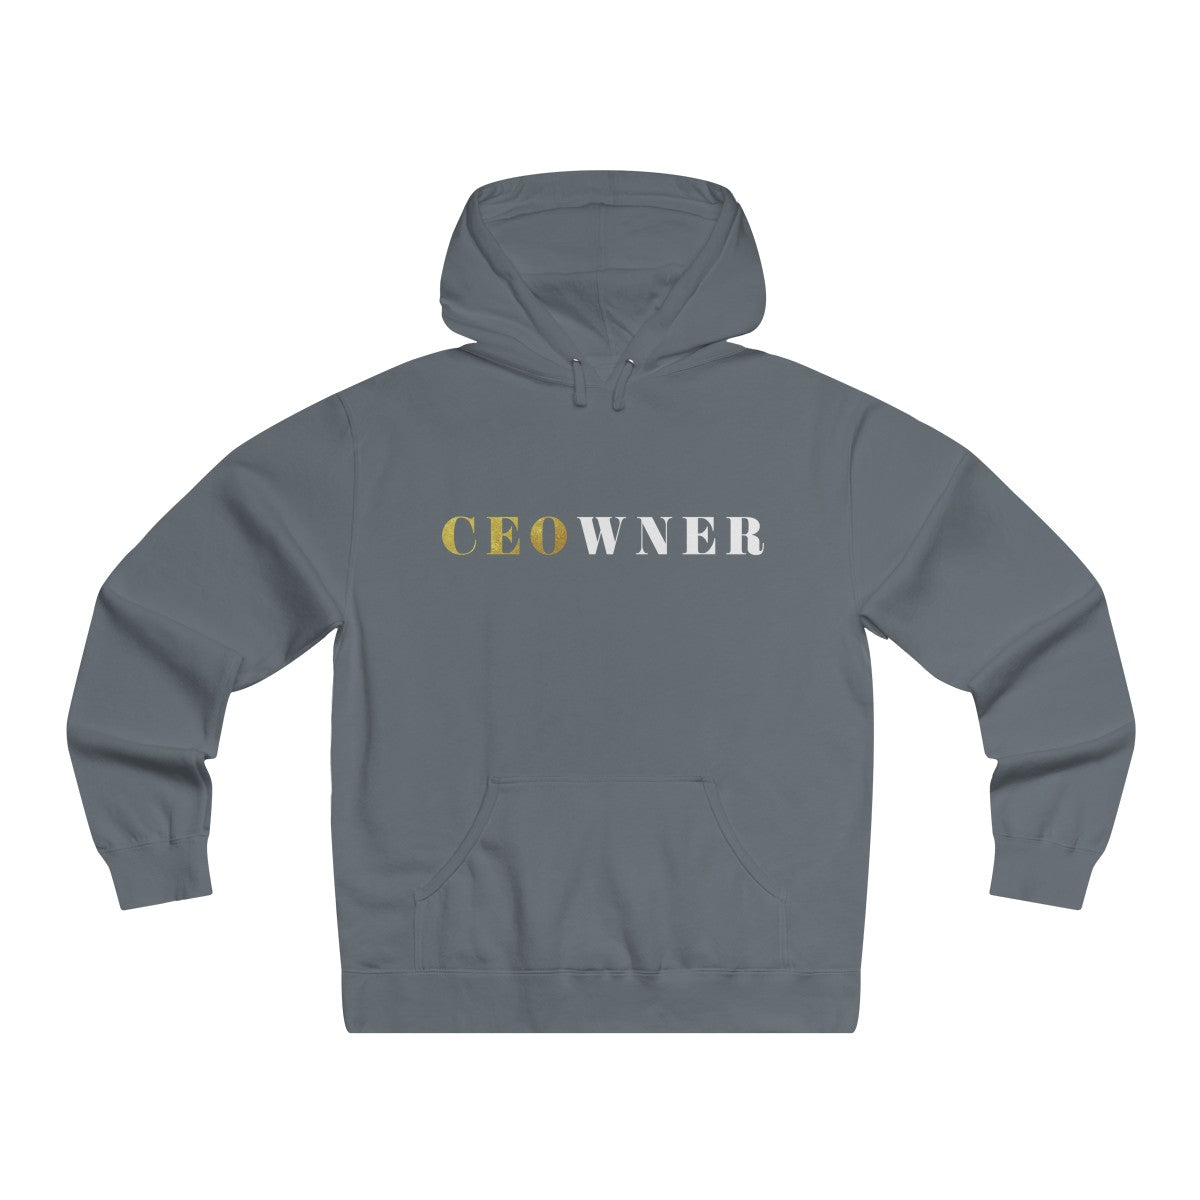 CEOwner™ Men's Lightweight Pullover Hooded Sweatshirt